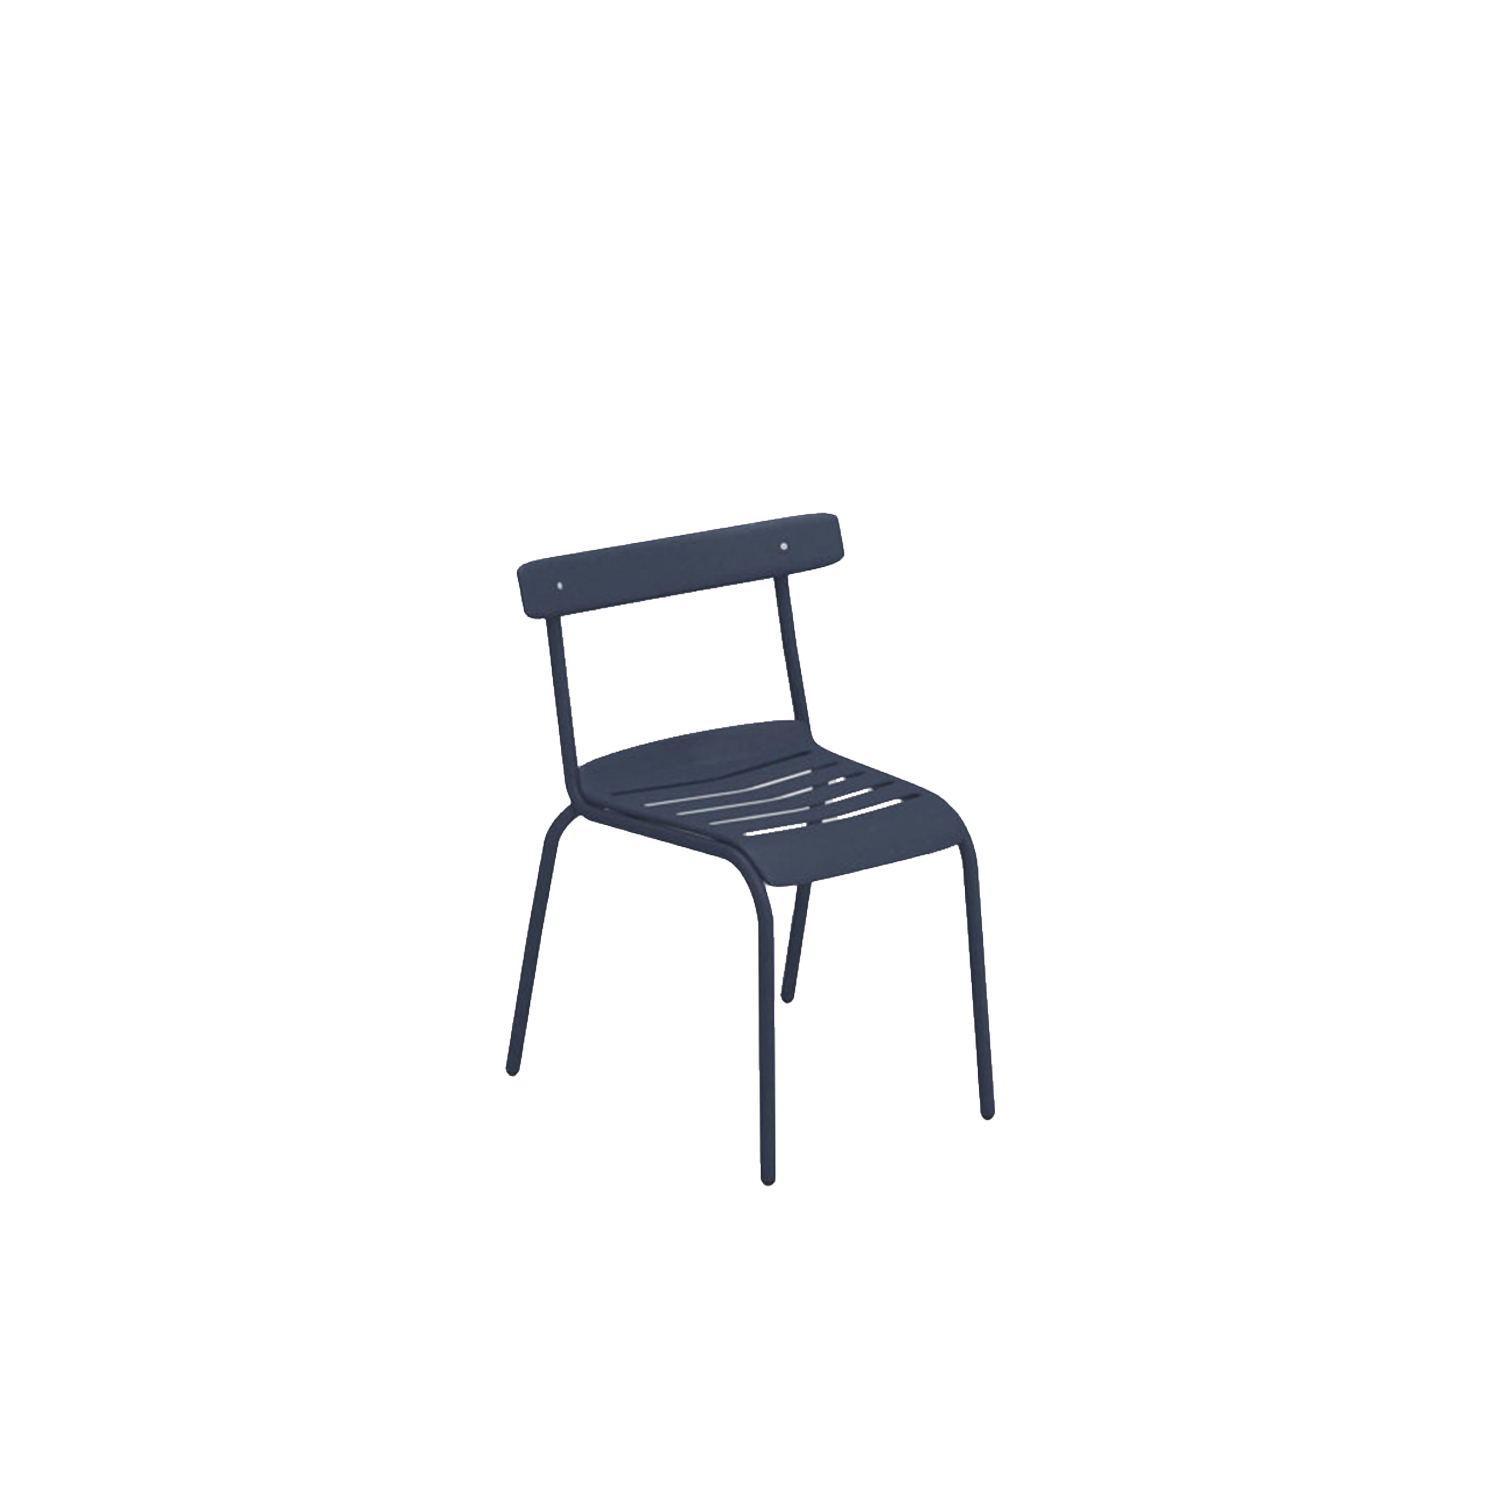 Miky Chair - Set of 4 - The clean, clear lines of the Miky steel chair collection are minimalist and show great personality. The ample seat and backrest have been designed to give maximum comfort. A sophisticated colour palette emphasises the design of the chair and armchair to allow you to fit Miky into different settings.This Armchair is made from steel and comes in 20 different finishes so you can choose the best for your space. Please enquire for more information.  | Matter of Stuff